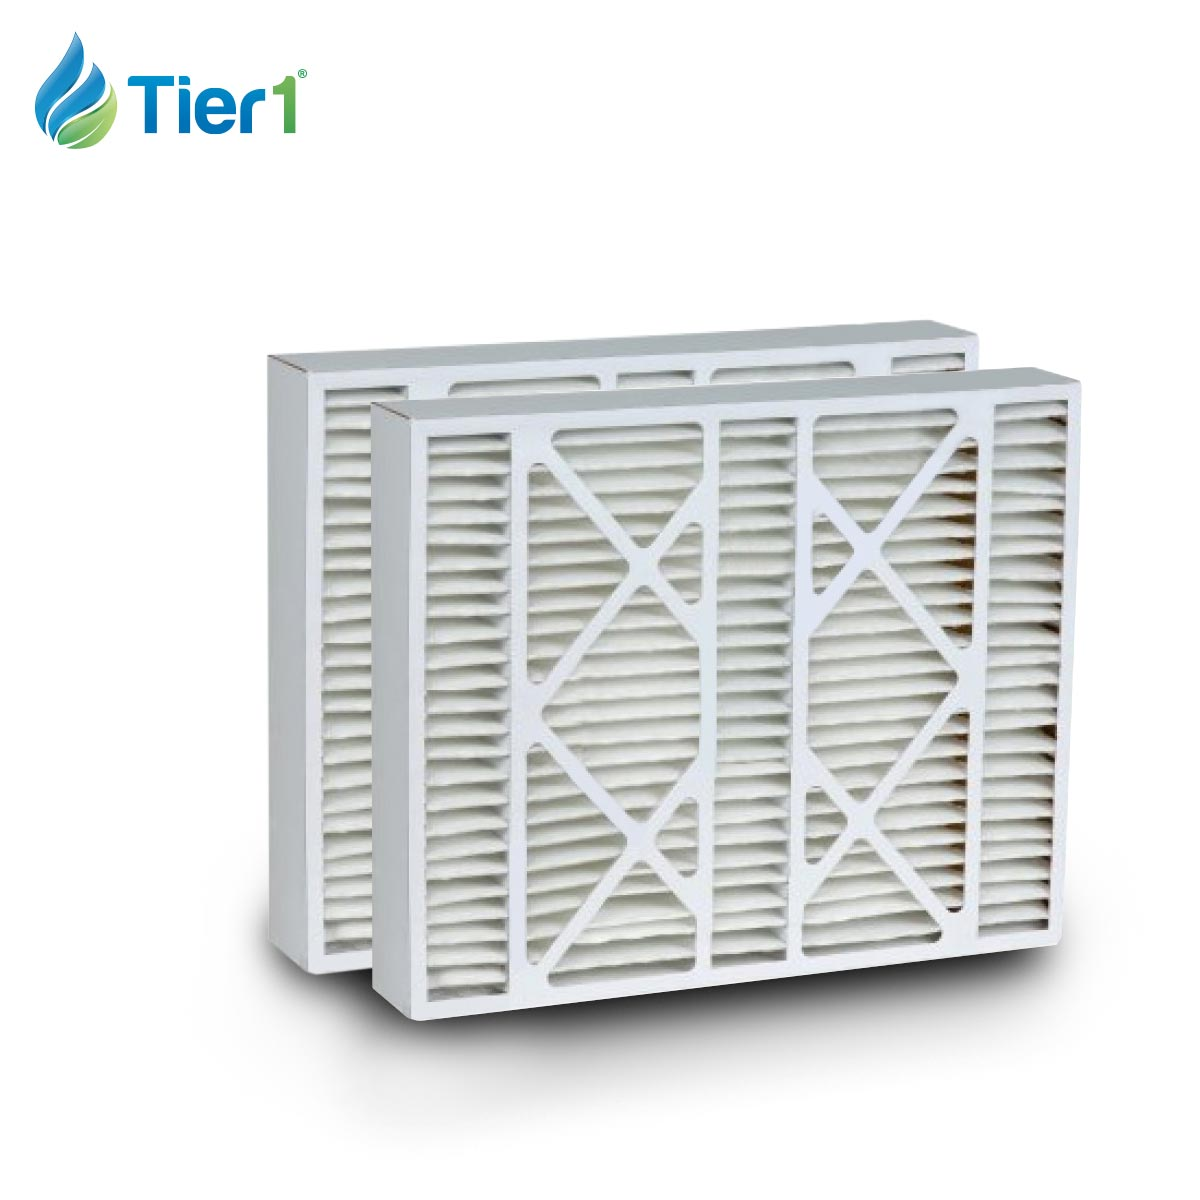 Tier1 brand replacement for Electro Air - 20 x 21 x 5 - MERV 8 (2-Pack) TIER1-DPFI20X21X5DEA